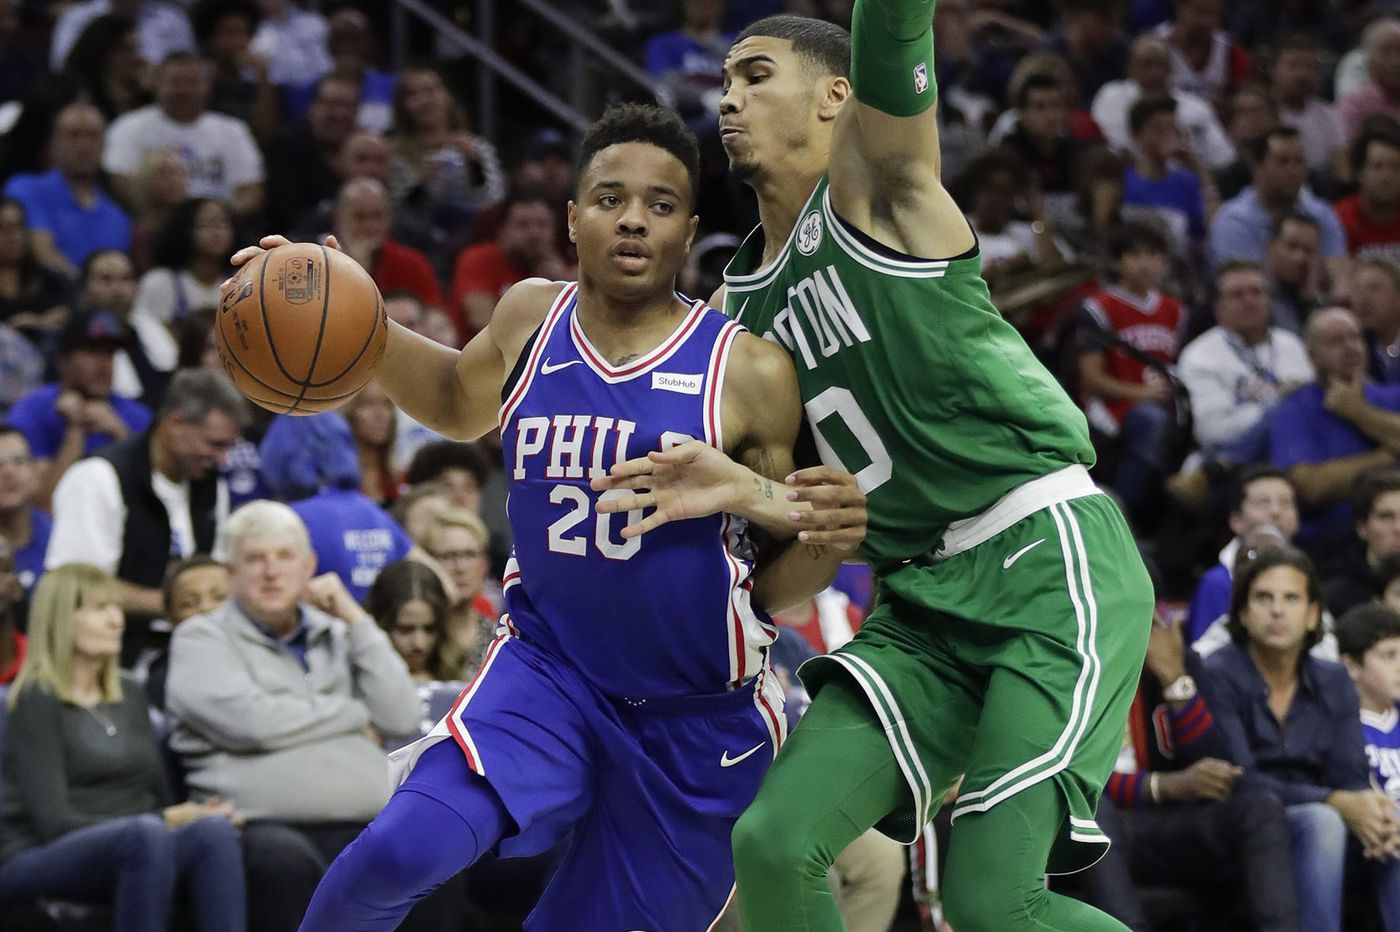 Sixers' Markelle Fultz says facing Celtics just another game